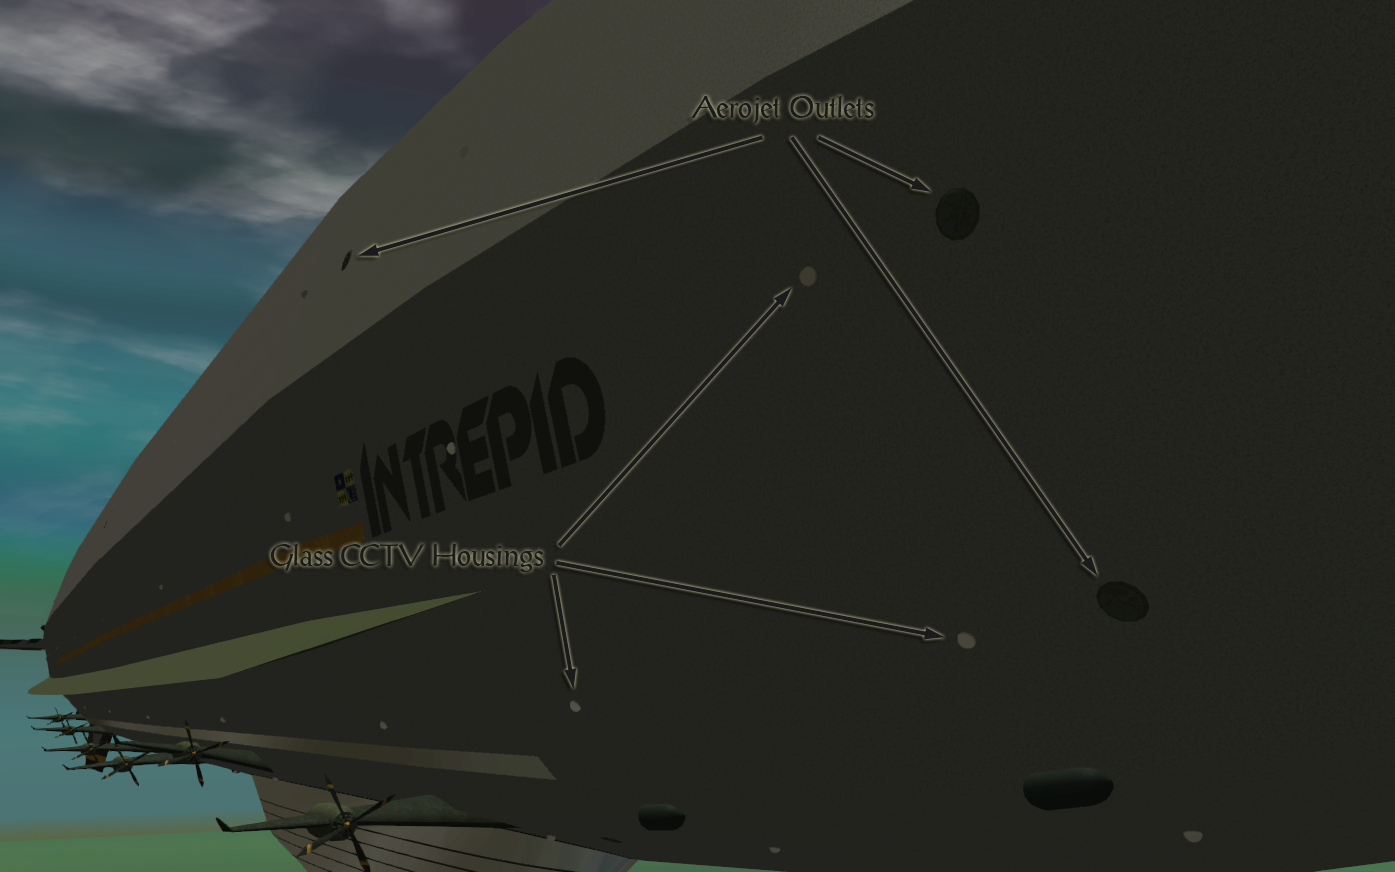 My Adventures In SketchUp - Intrepid: A Revolution In Design - A Close-Up RCT3 Screenshot Identifying Three Of Intrepid's Aerojet Outlets and Three Of The Glass CCTV Housings. The Viewer Is Alongside Starboard Looking Aft.